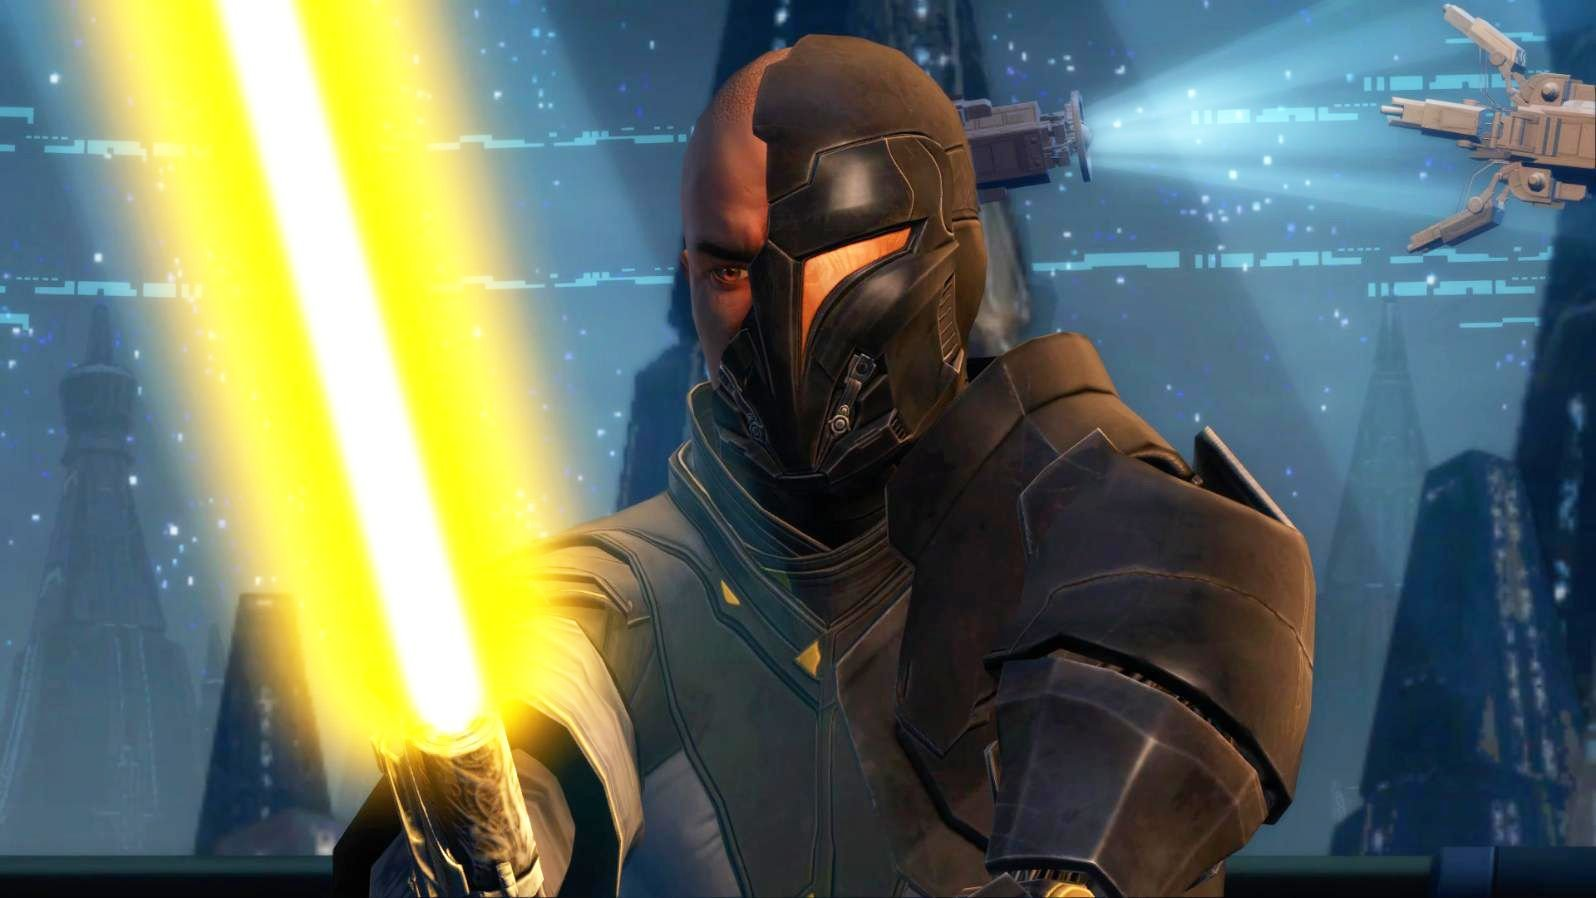 Star Wars: The Old Republic forces its way onto Steam nine years after launching screenshot